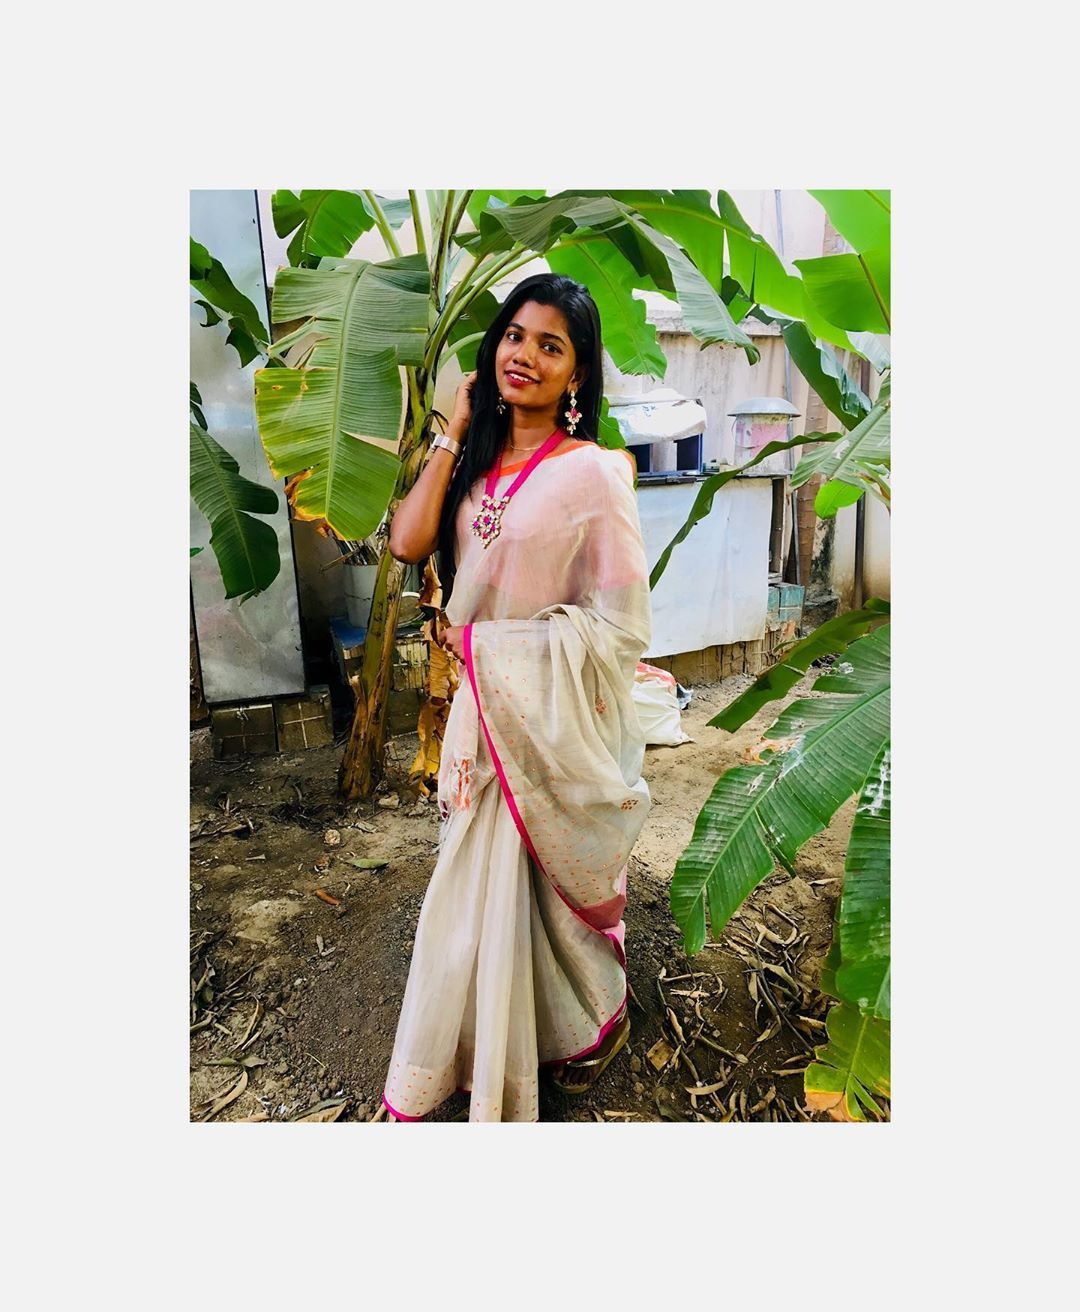 𝙱𝚎 𝚢𝚘𝚞𝚛 𝚋𝚎𝚊𝚞𝚝𝚒𝚏𝚞𝚕 𝚜𝚎𝚕𝚏.🎀🔅 . . . . . . . . #saree #medras_mistress_of_ceremony  #love #photooftheday #fashion #happy #me #summer #girl #art #smile #nature #instalike #food #style #fitness #nofilter #amazing #life #travel #beauty #sun #bestoftheday #photo #sky #vsco #sunset #ootd #pretty #swag